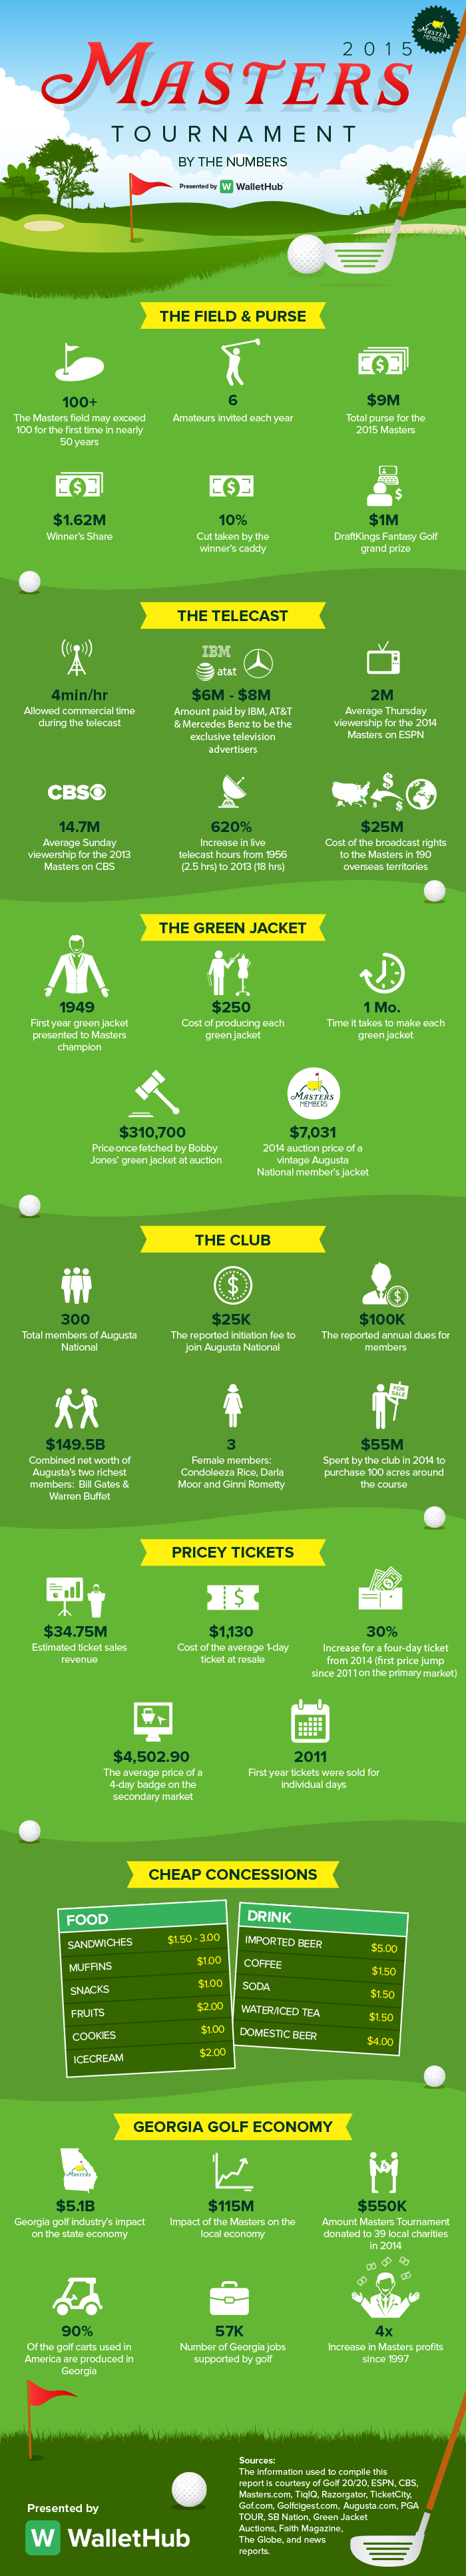 Masters-By-The-Numbers-Infographic-3